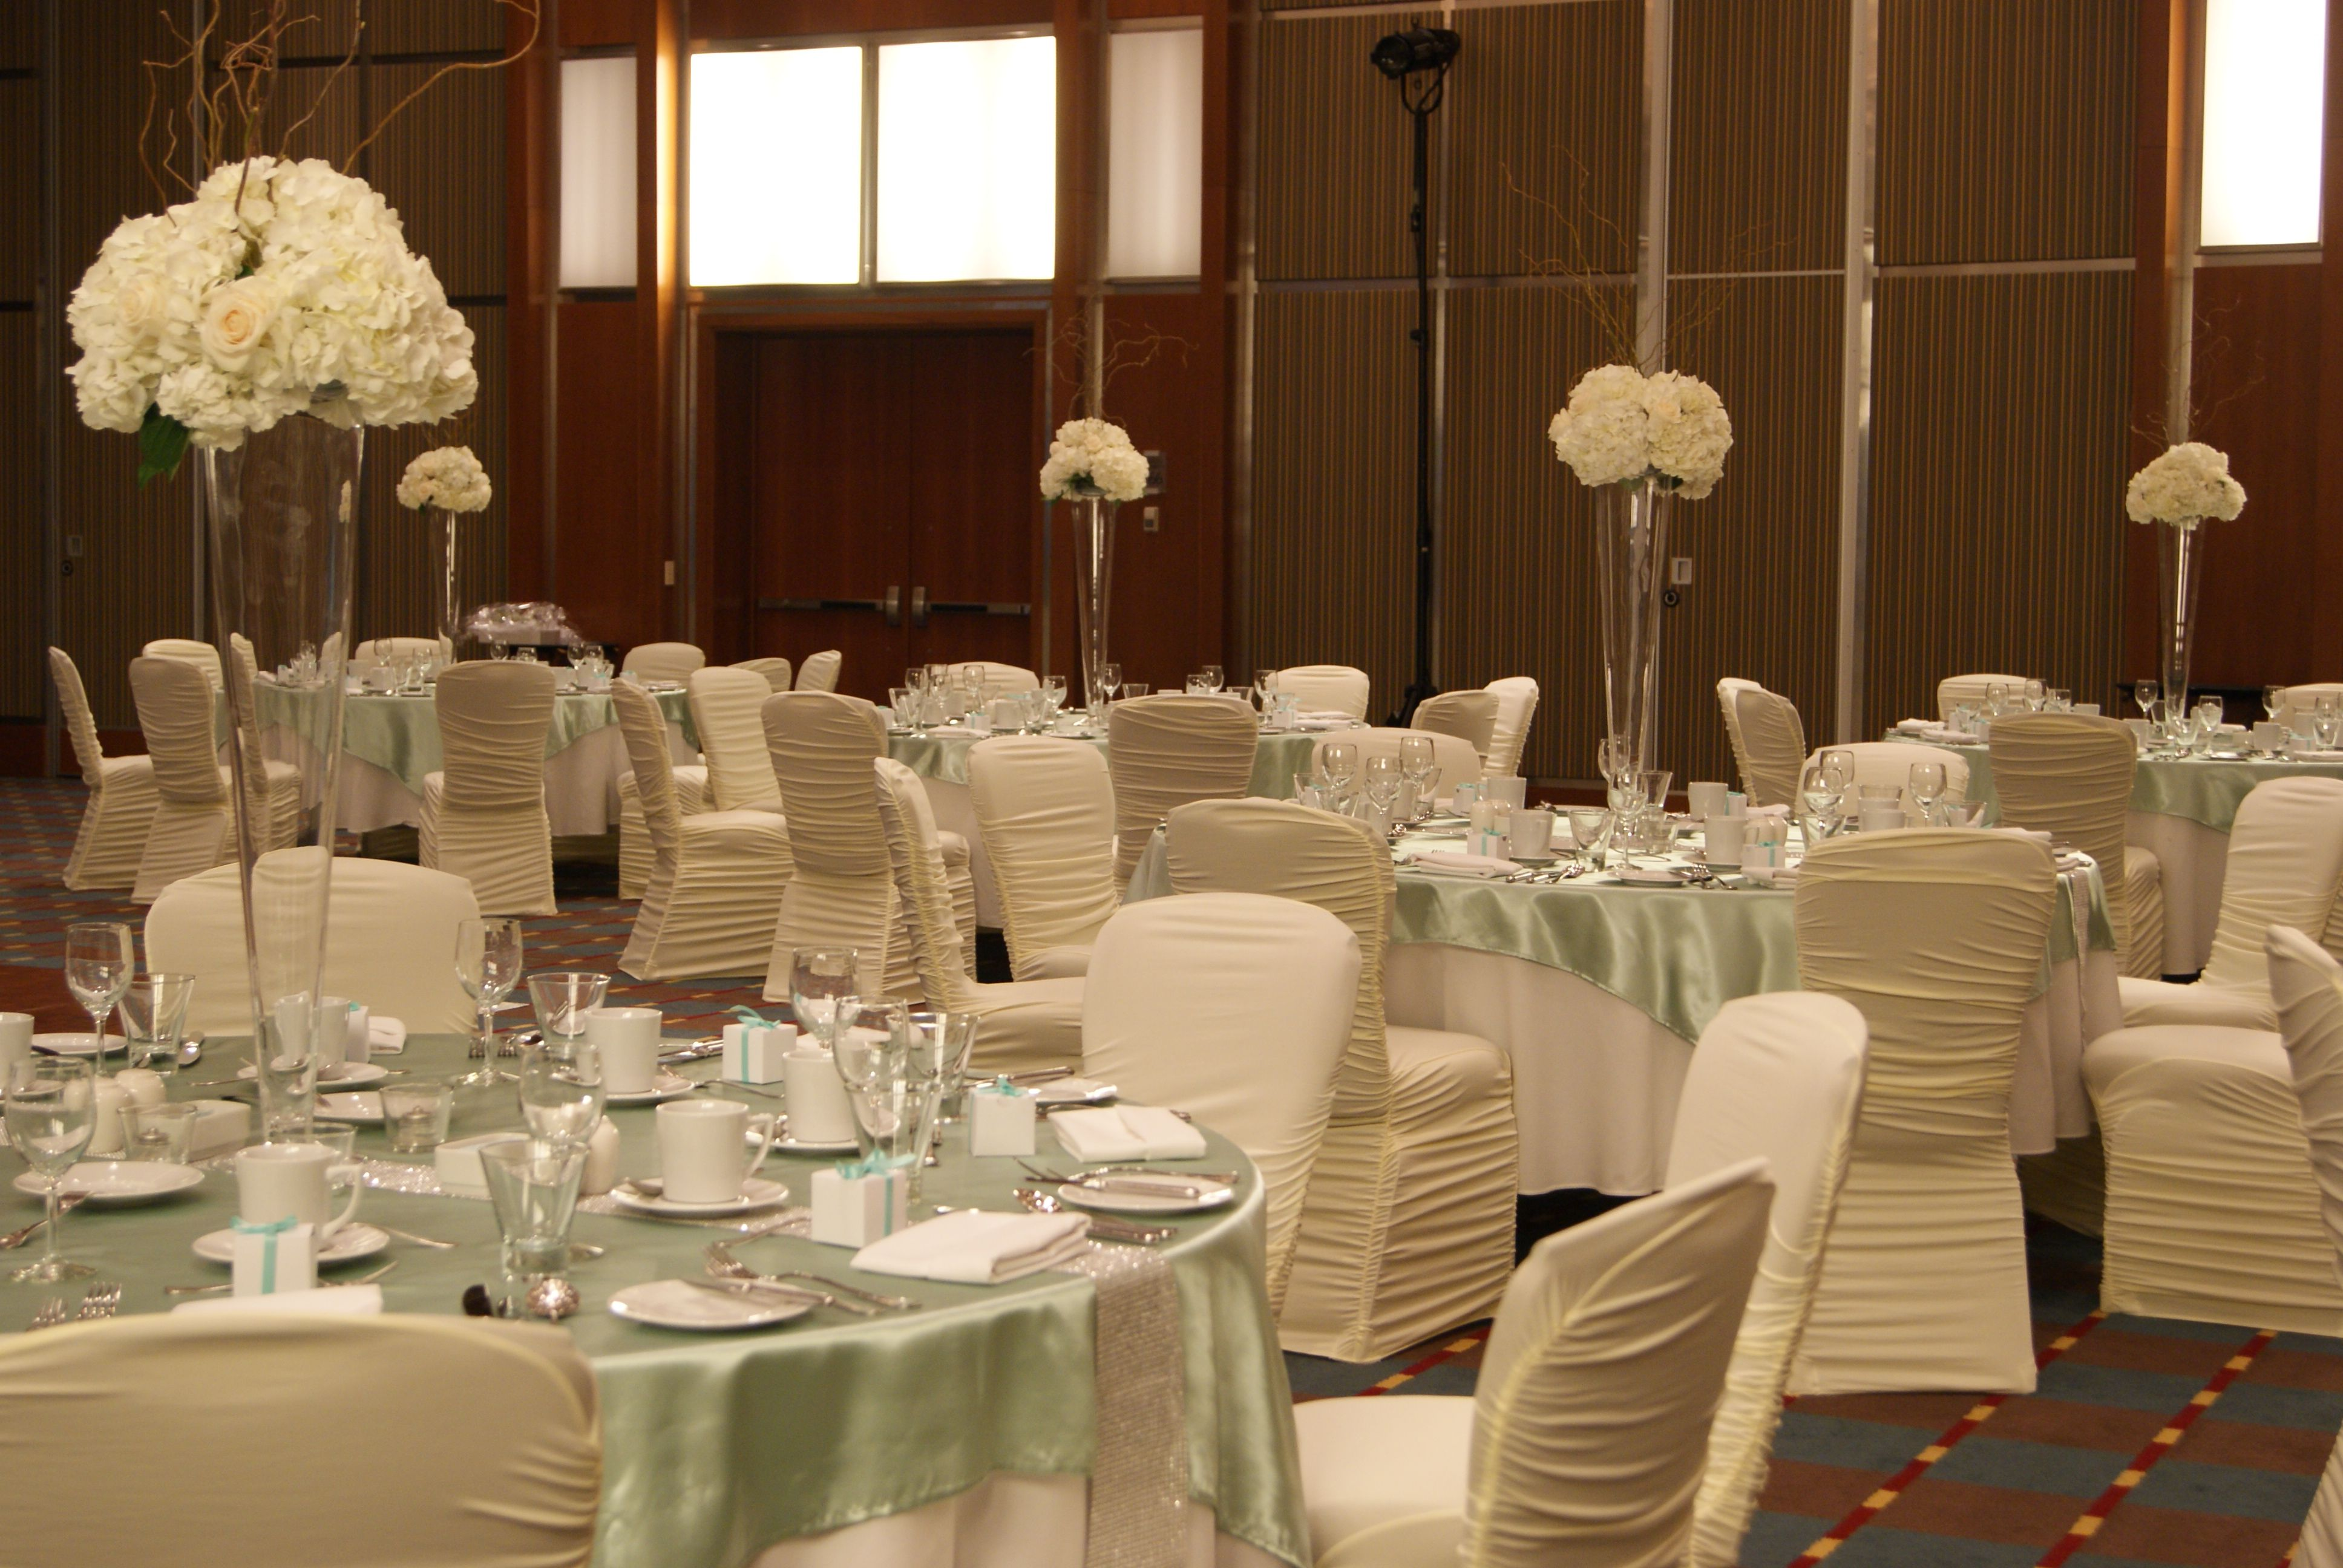 chair covers sage green mesh office uk table overlays with silver runners ivory spandex and fresh floral centerpieces brookstreet hotel kanata on